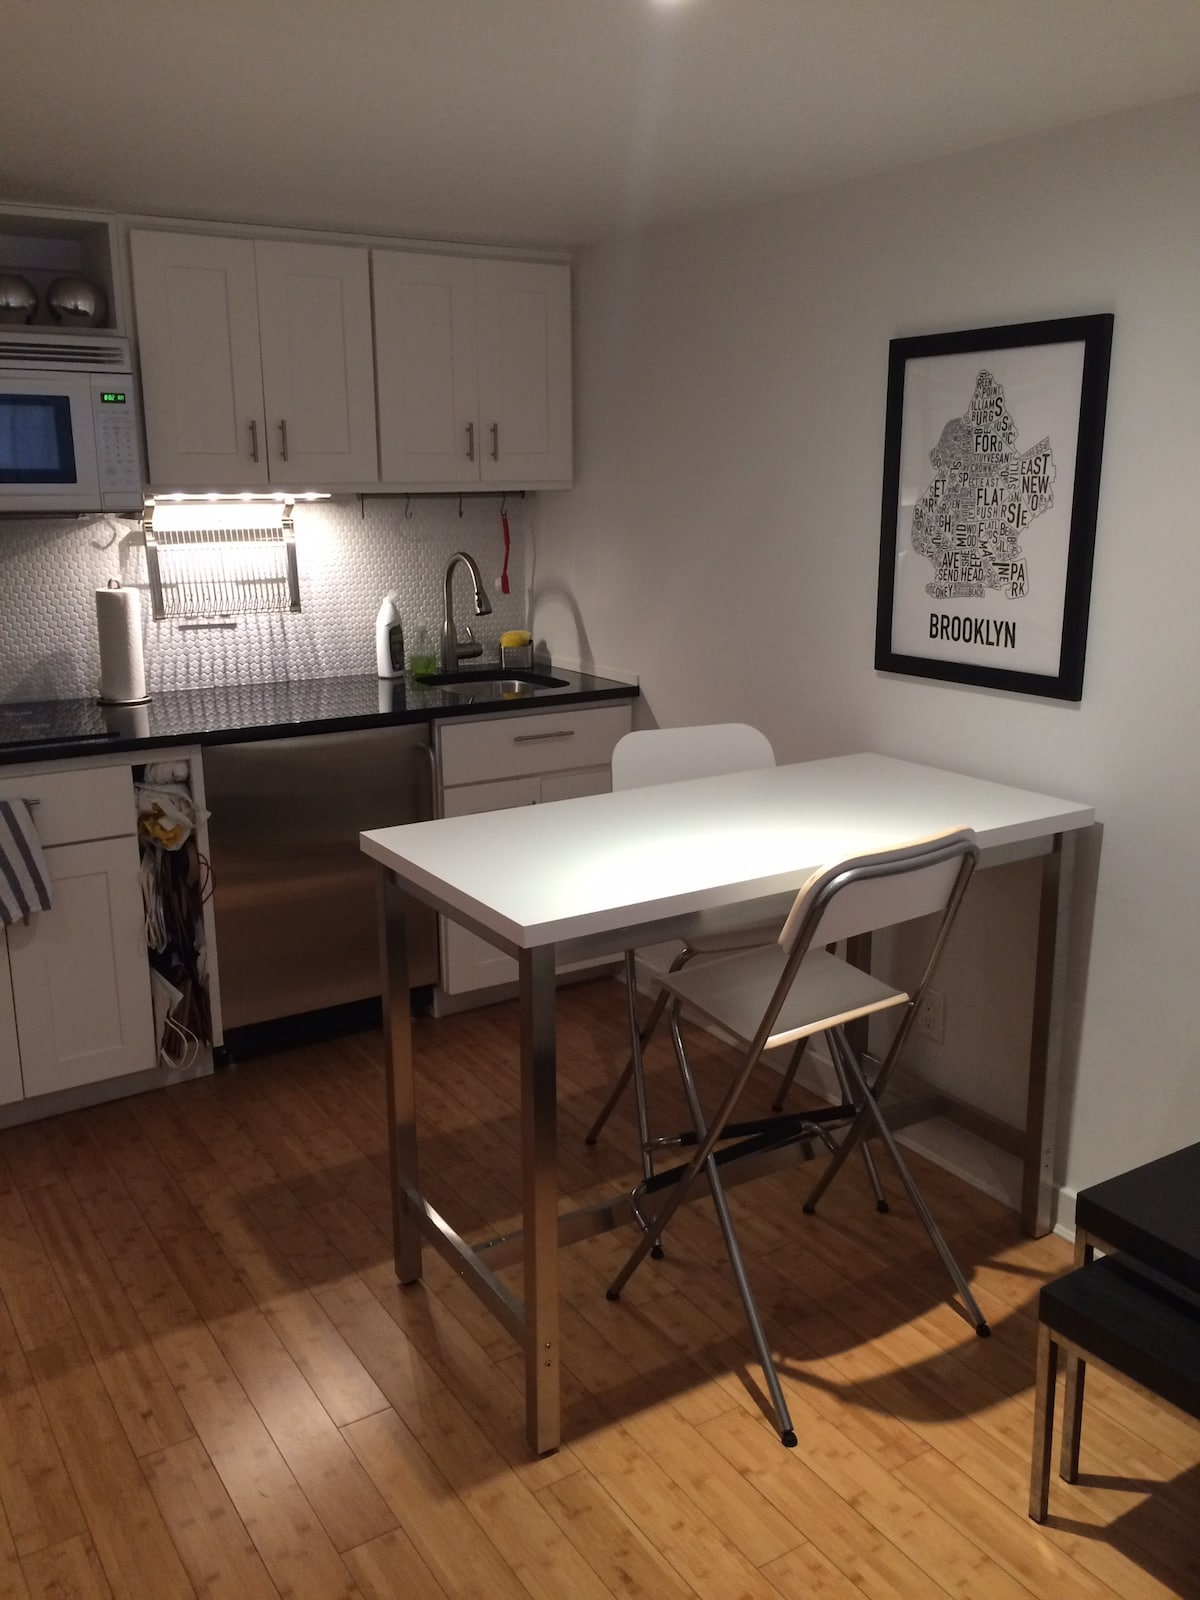 the kitchenette is small but fully equipped